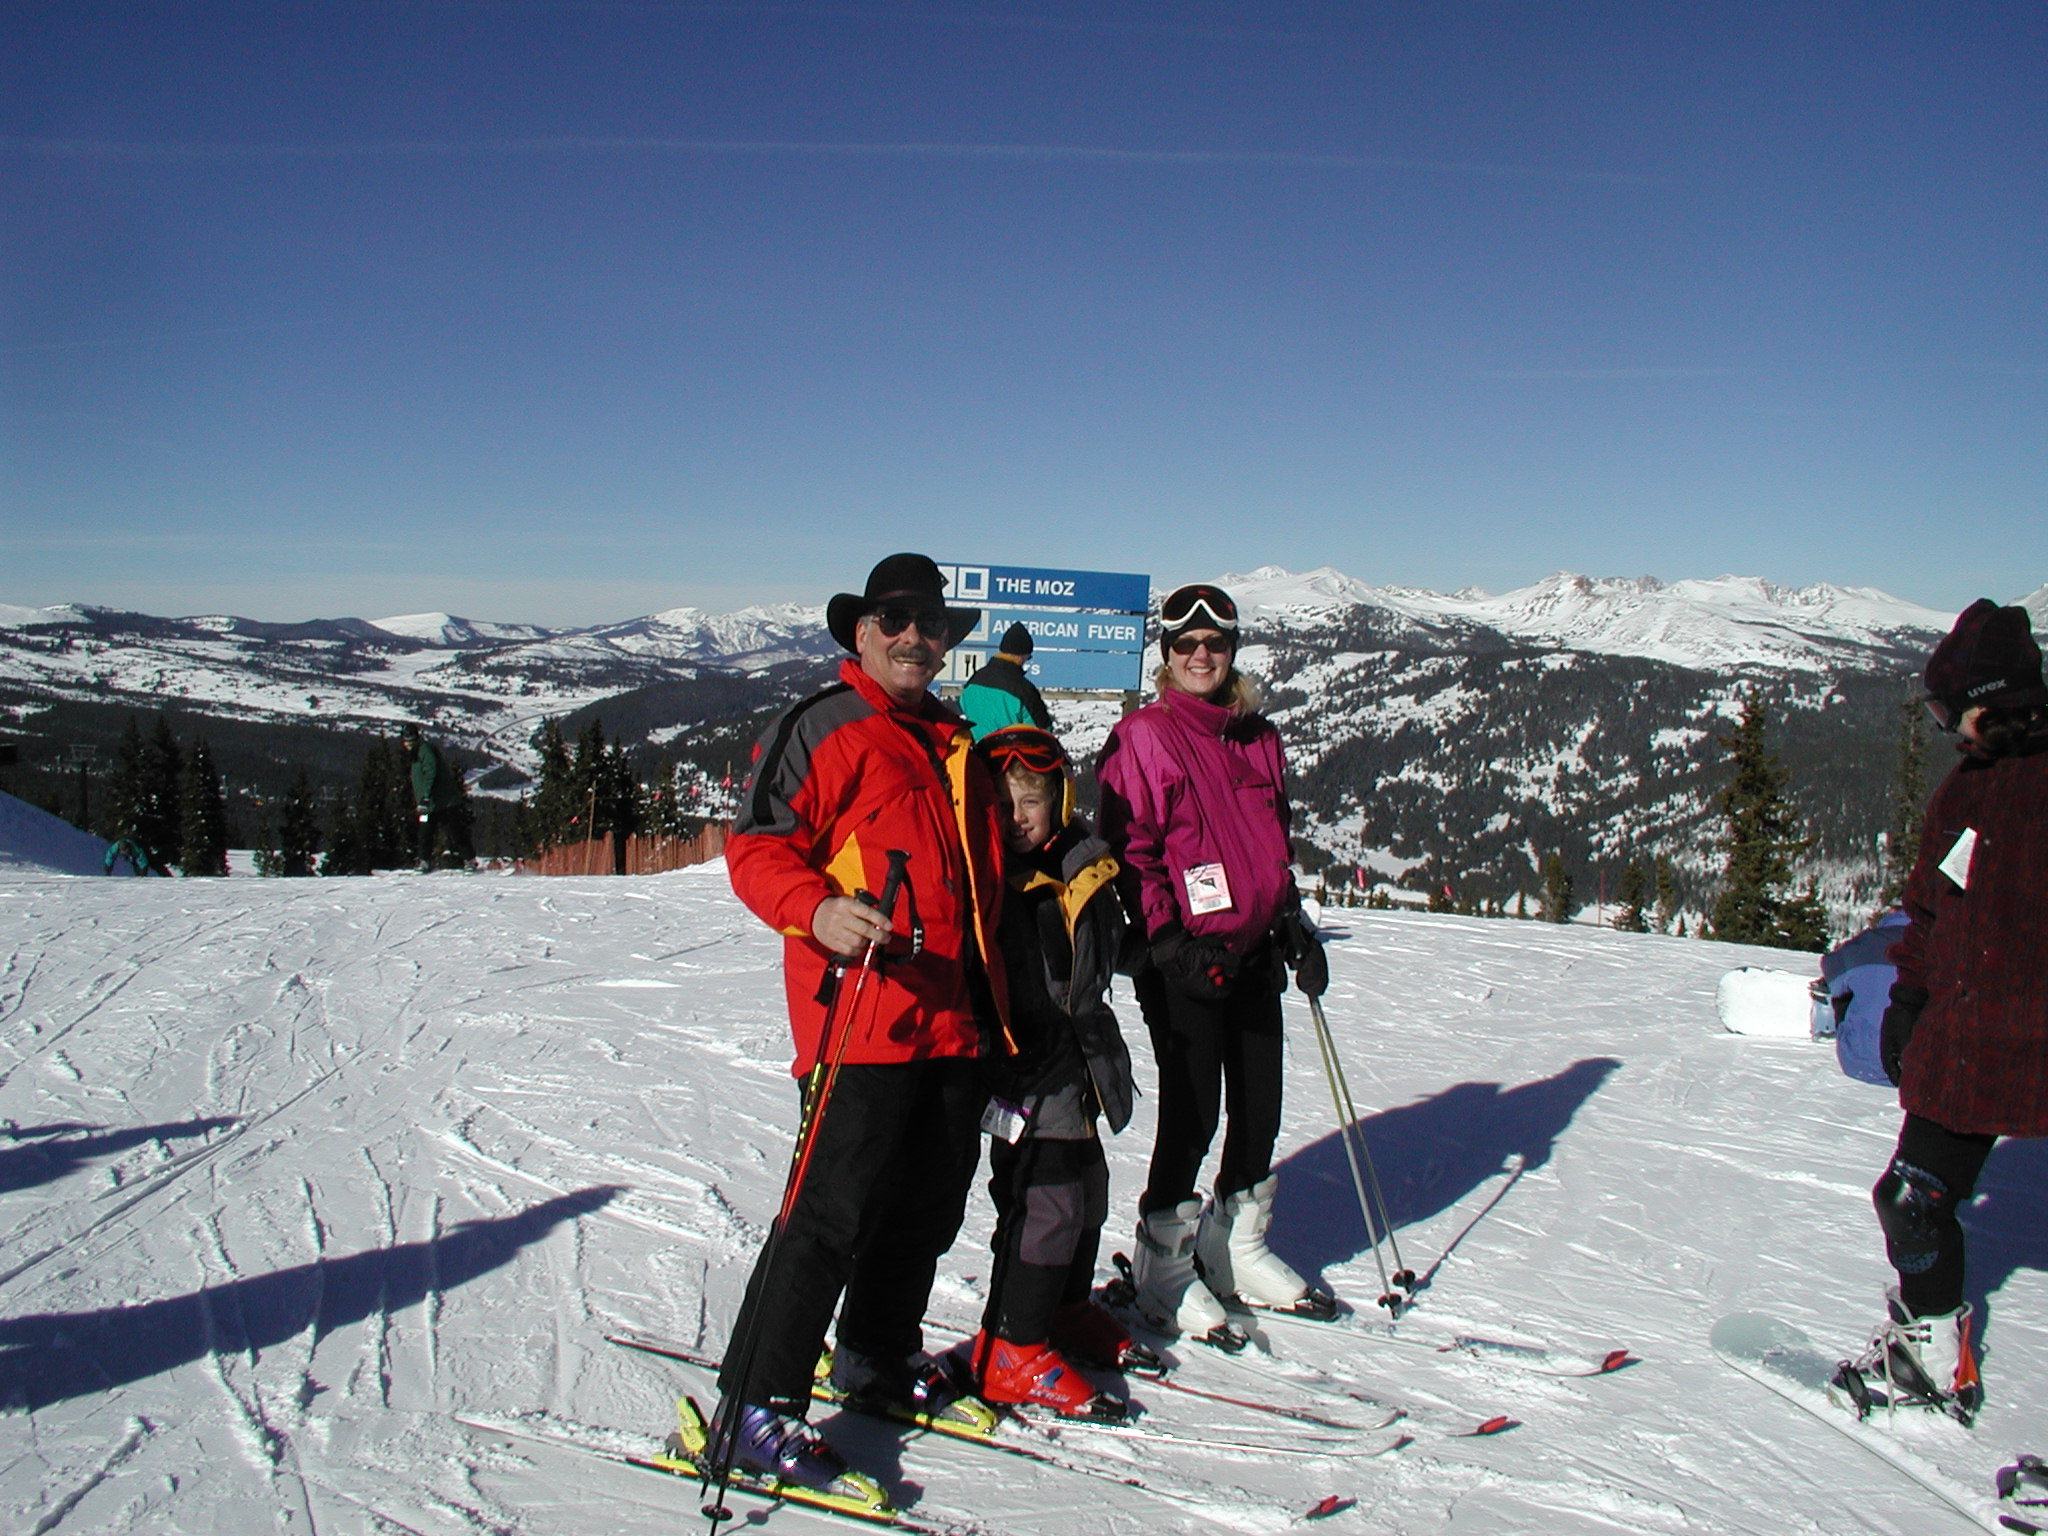 Pristine ski slopes in Breckenridge are just over an hour away.